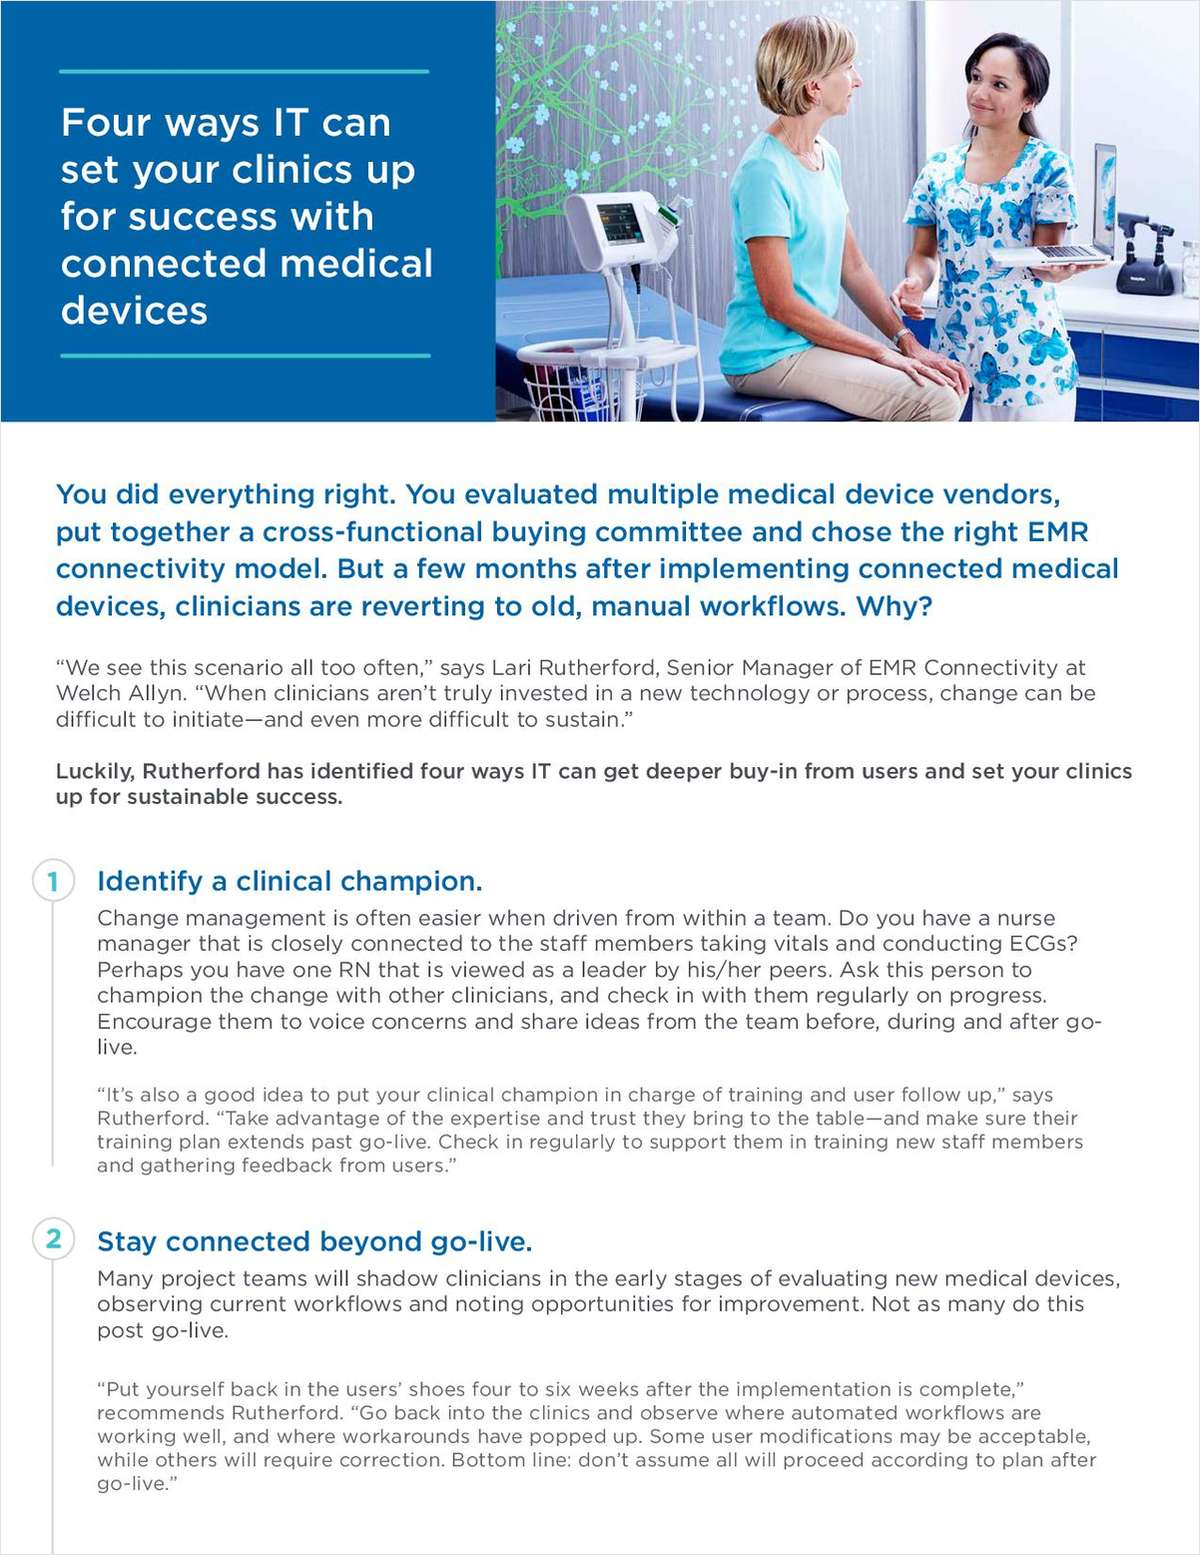 4 Ways IT Can Set Clinics Up for Success with Connected Medical Devices